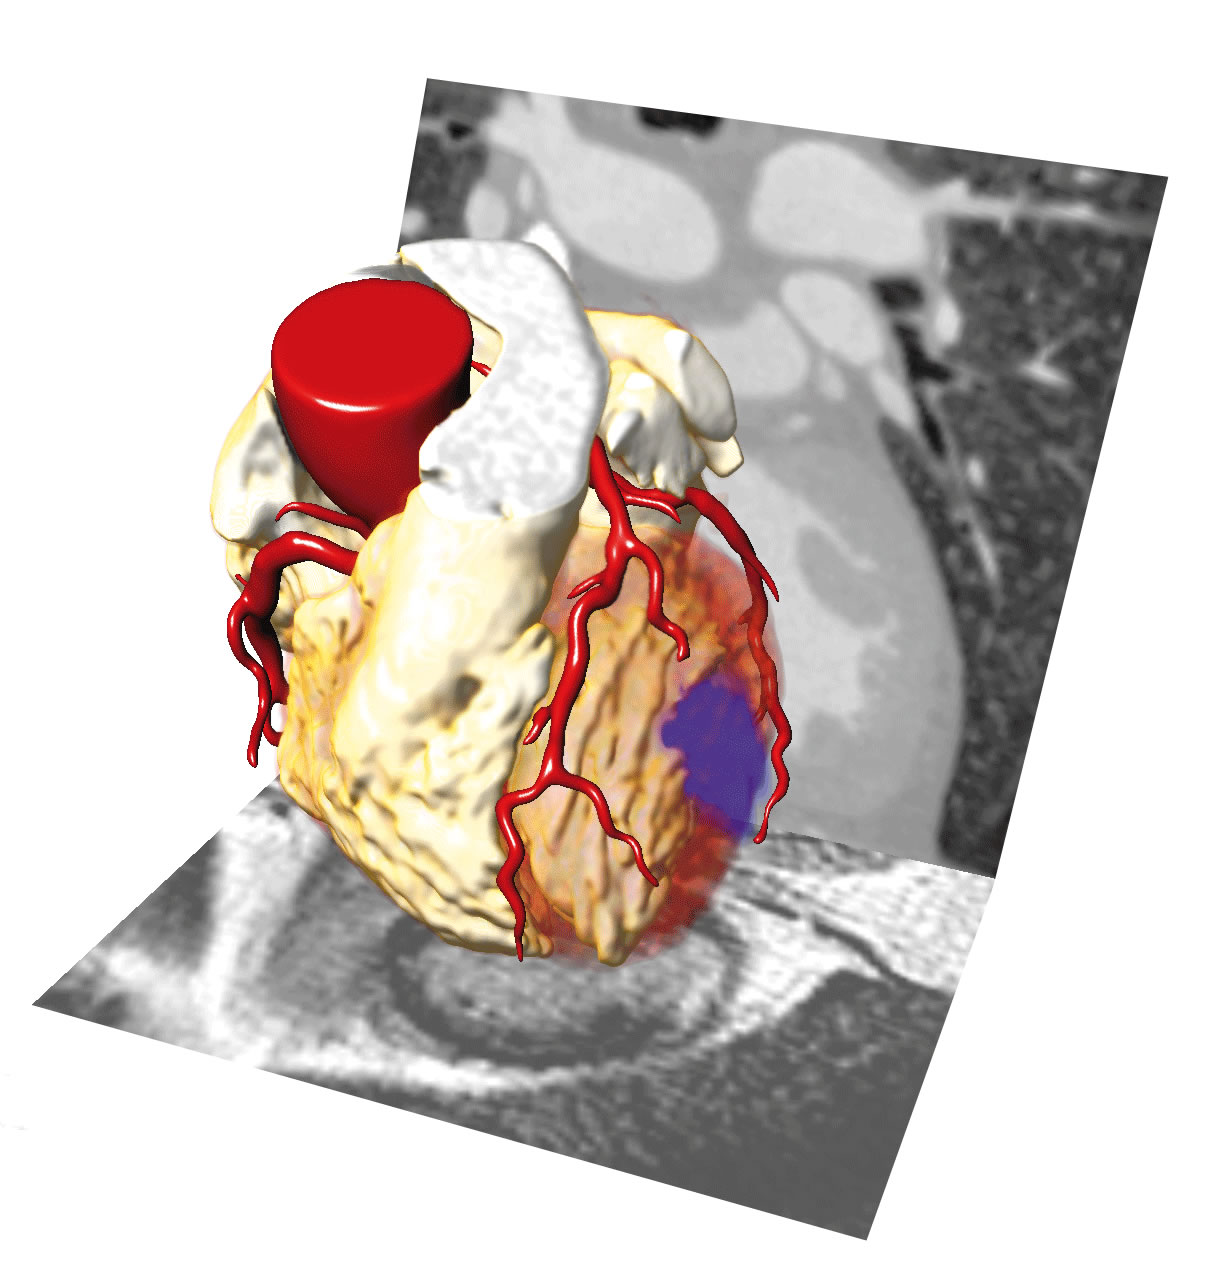 CAIPI software module heart analysis bloodflow heartchambers